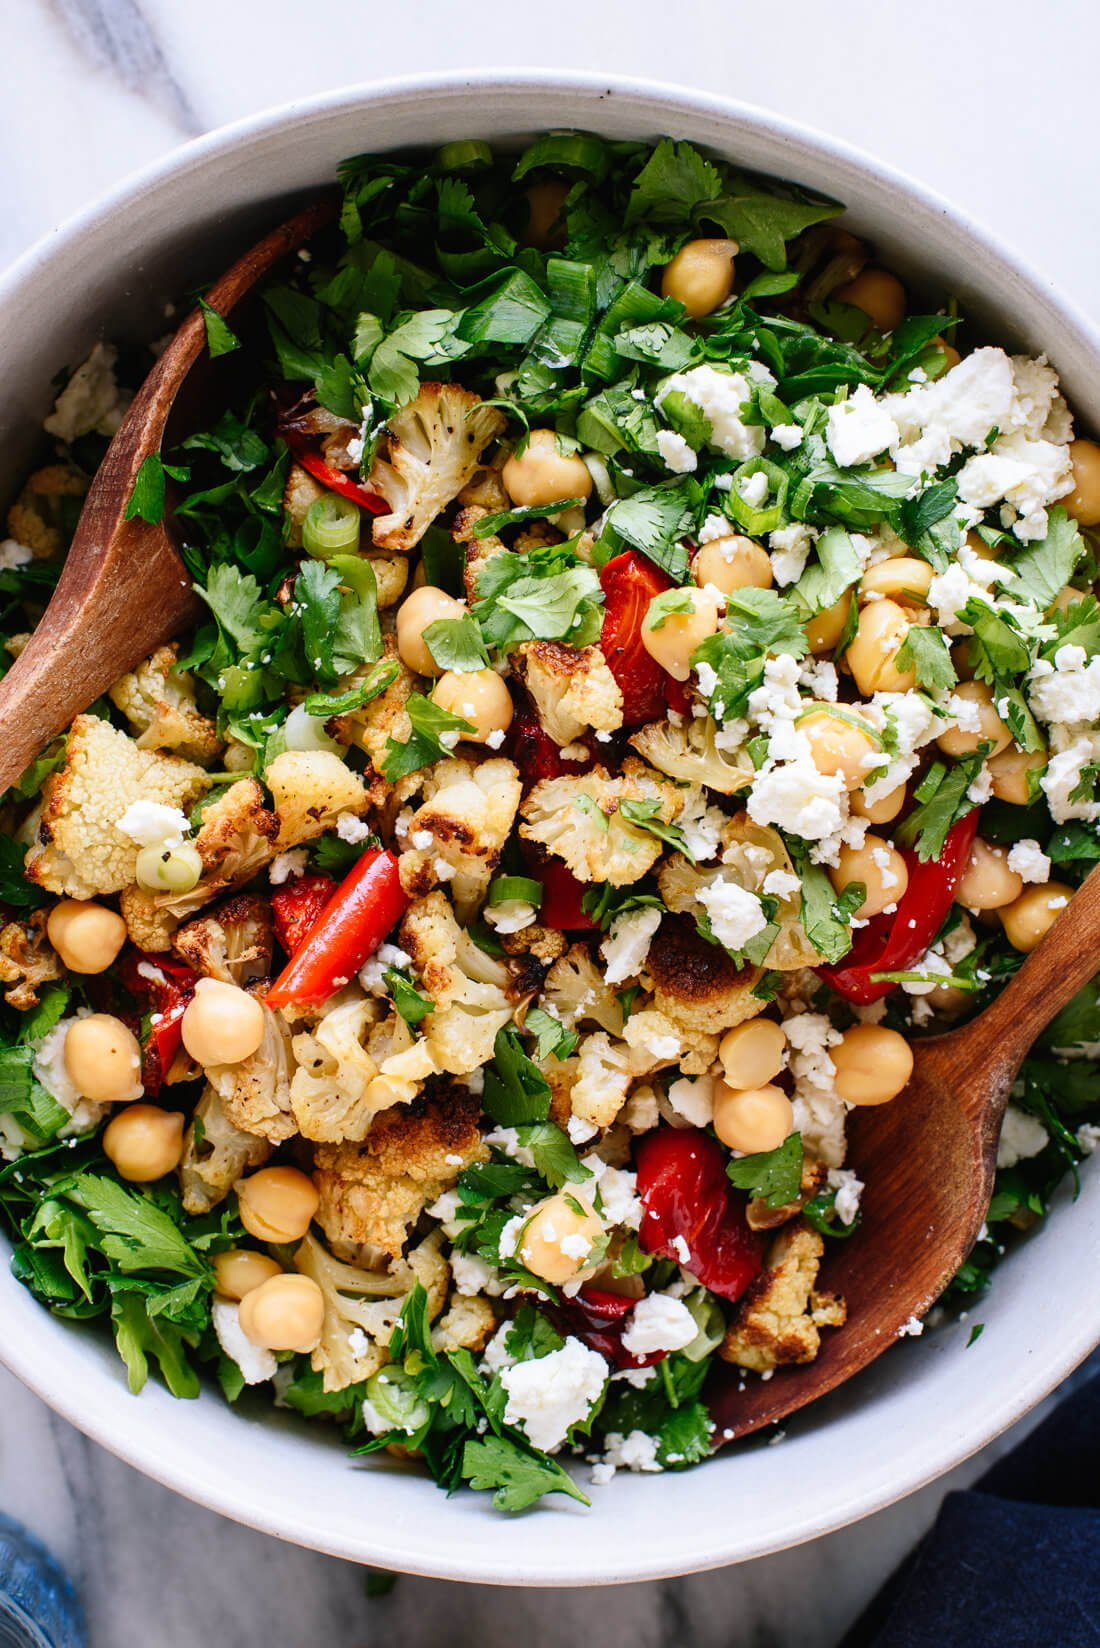 Roasted Cauliflower, Farro and Arugula Salad with Lemony Tahini Dressing